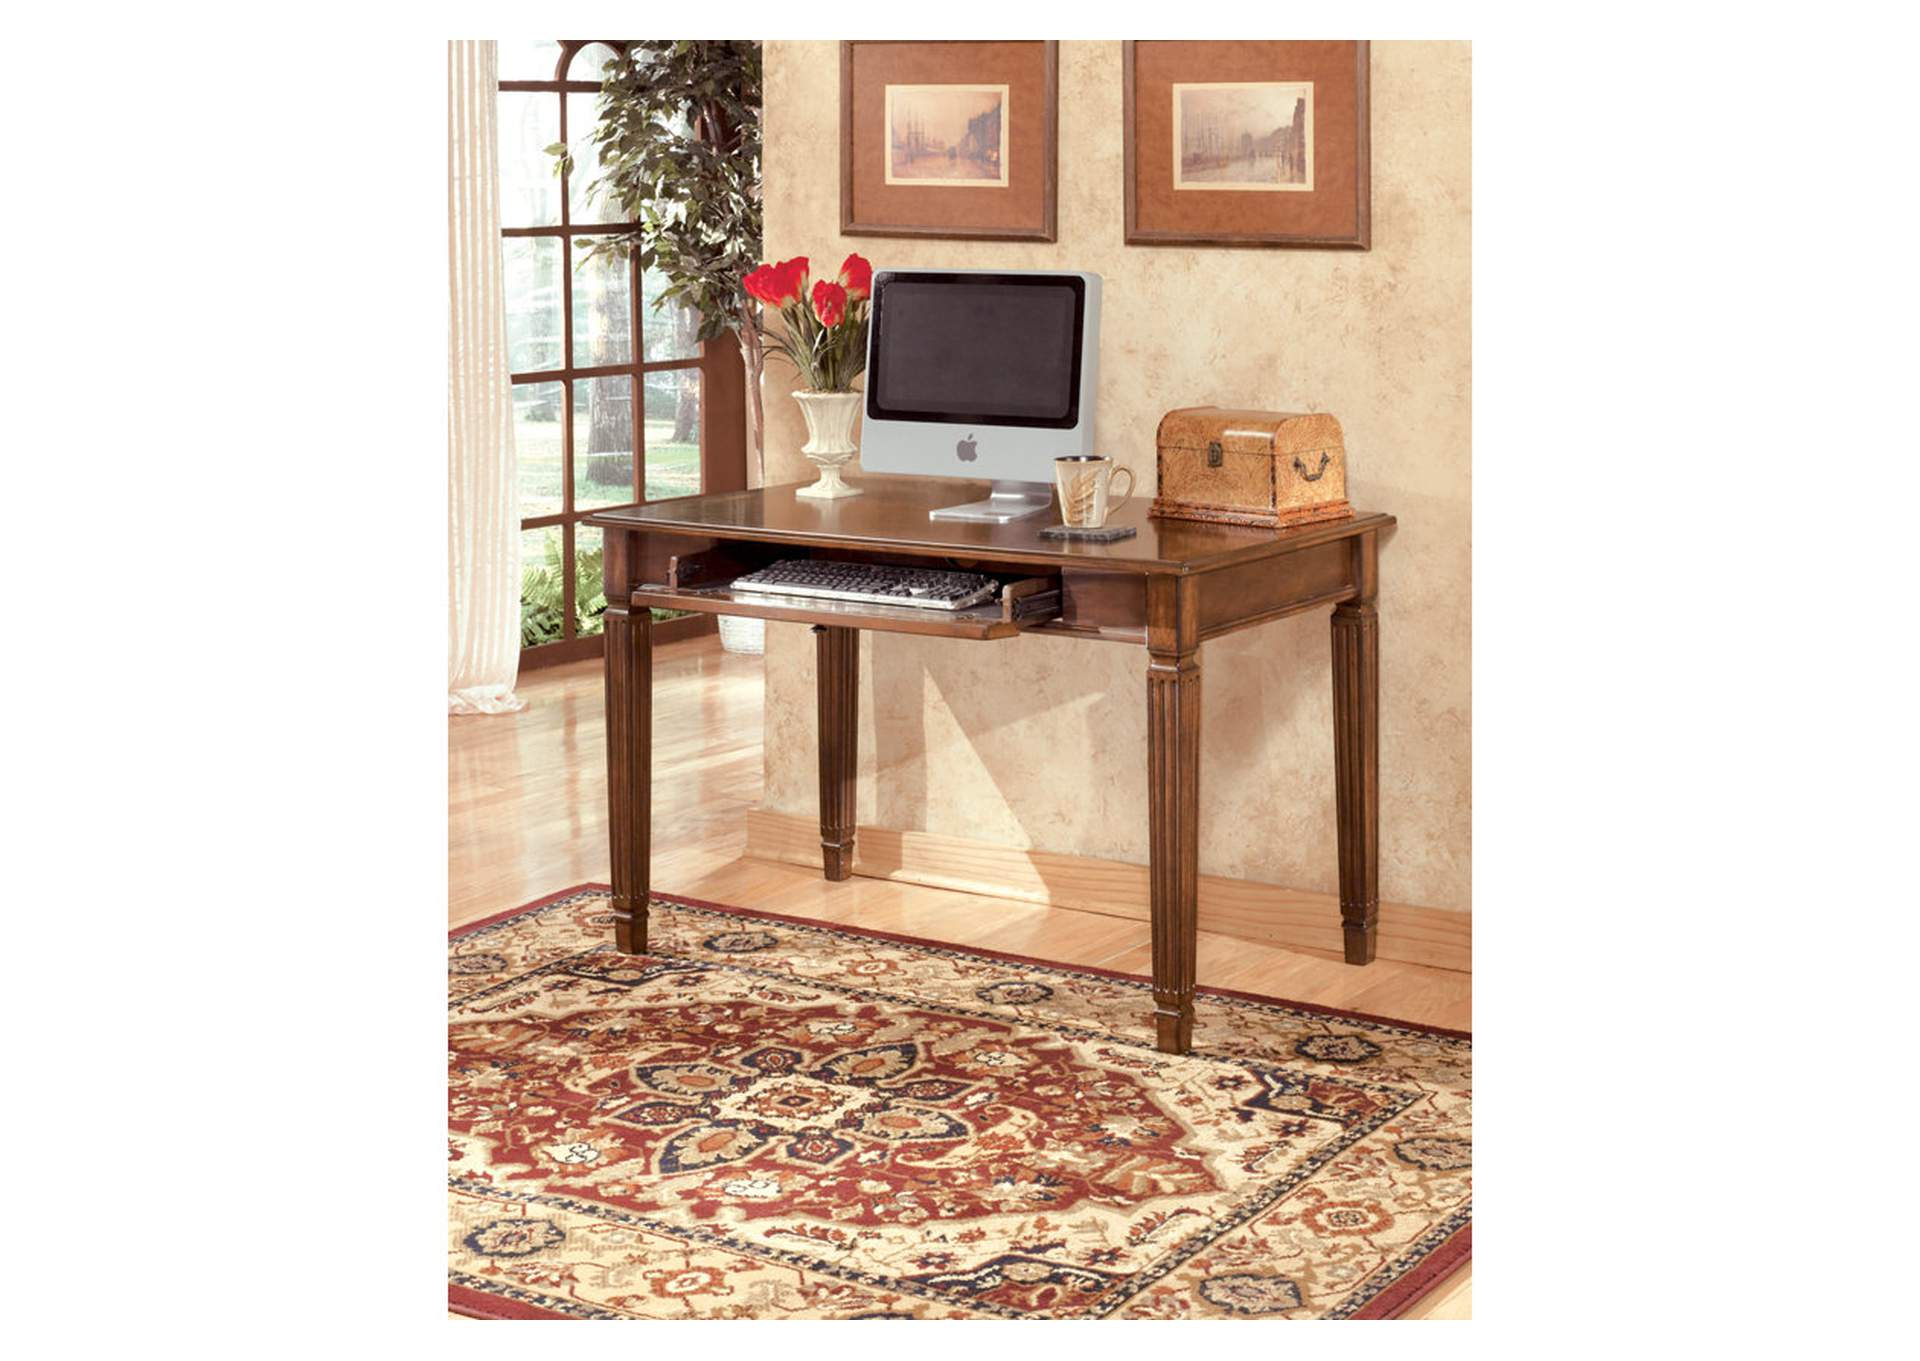 Hamlyn Medium Brown Small Leg Desk,Signature Design By Ashley